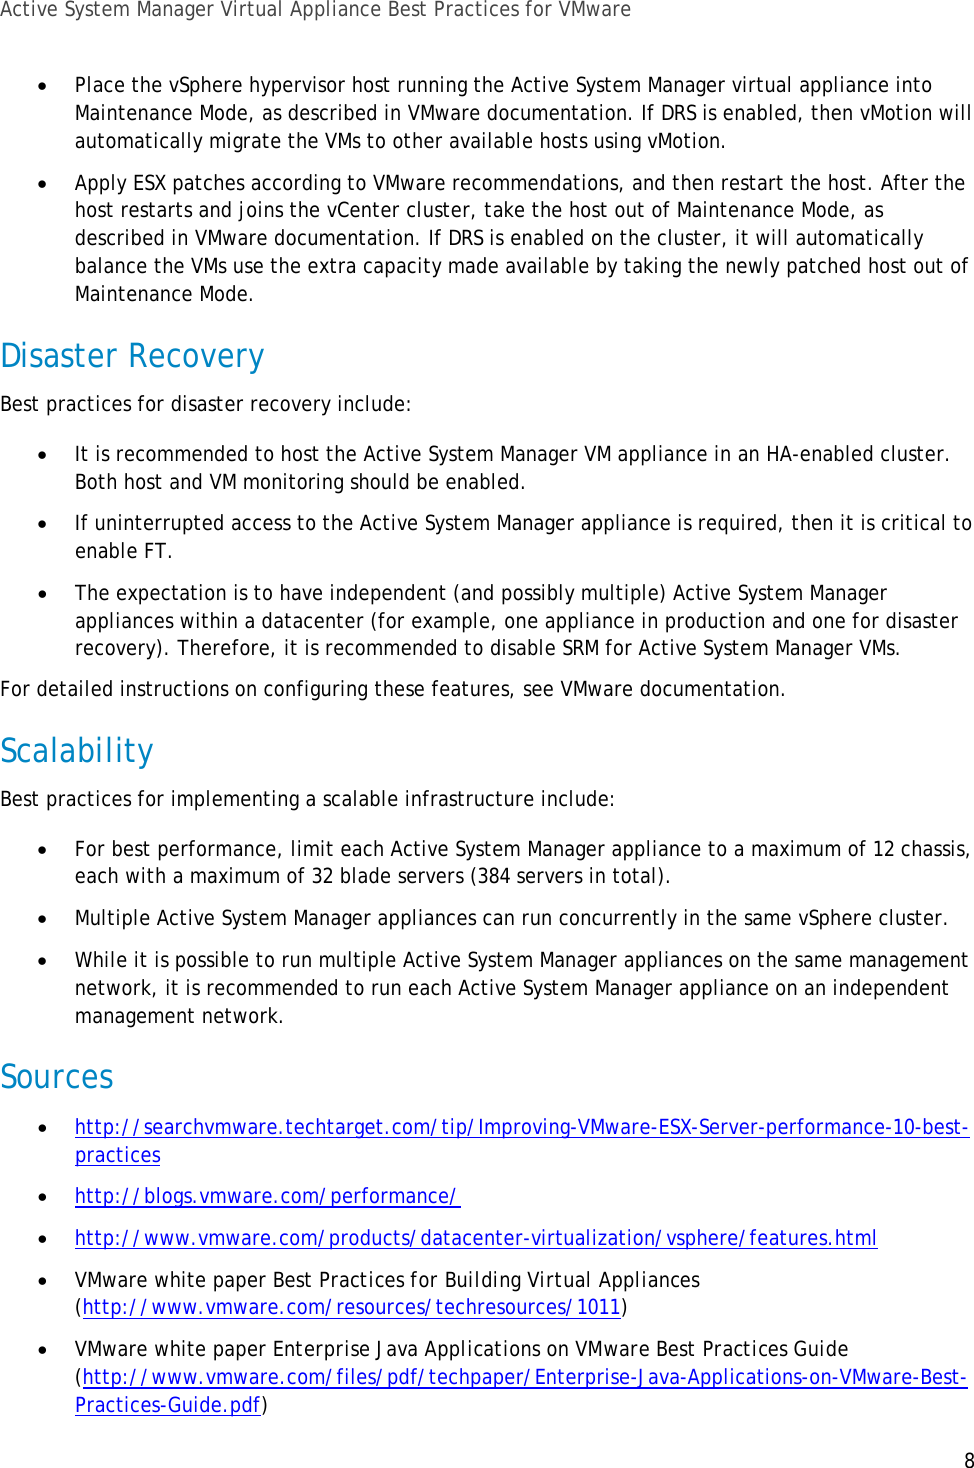 Dell Active System Manager Version 7 0 Practices Guide 7 0